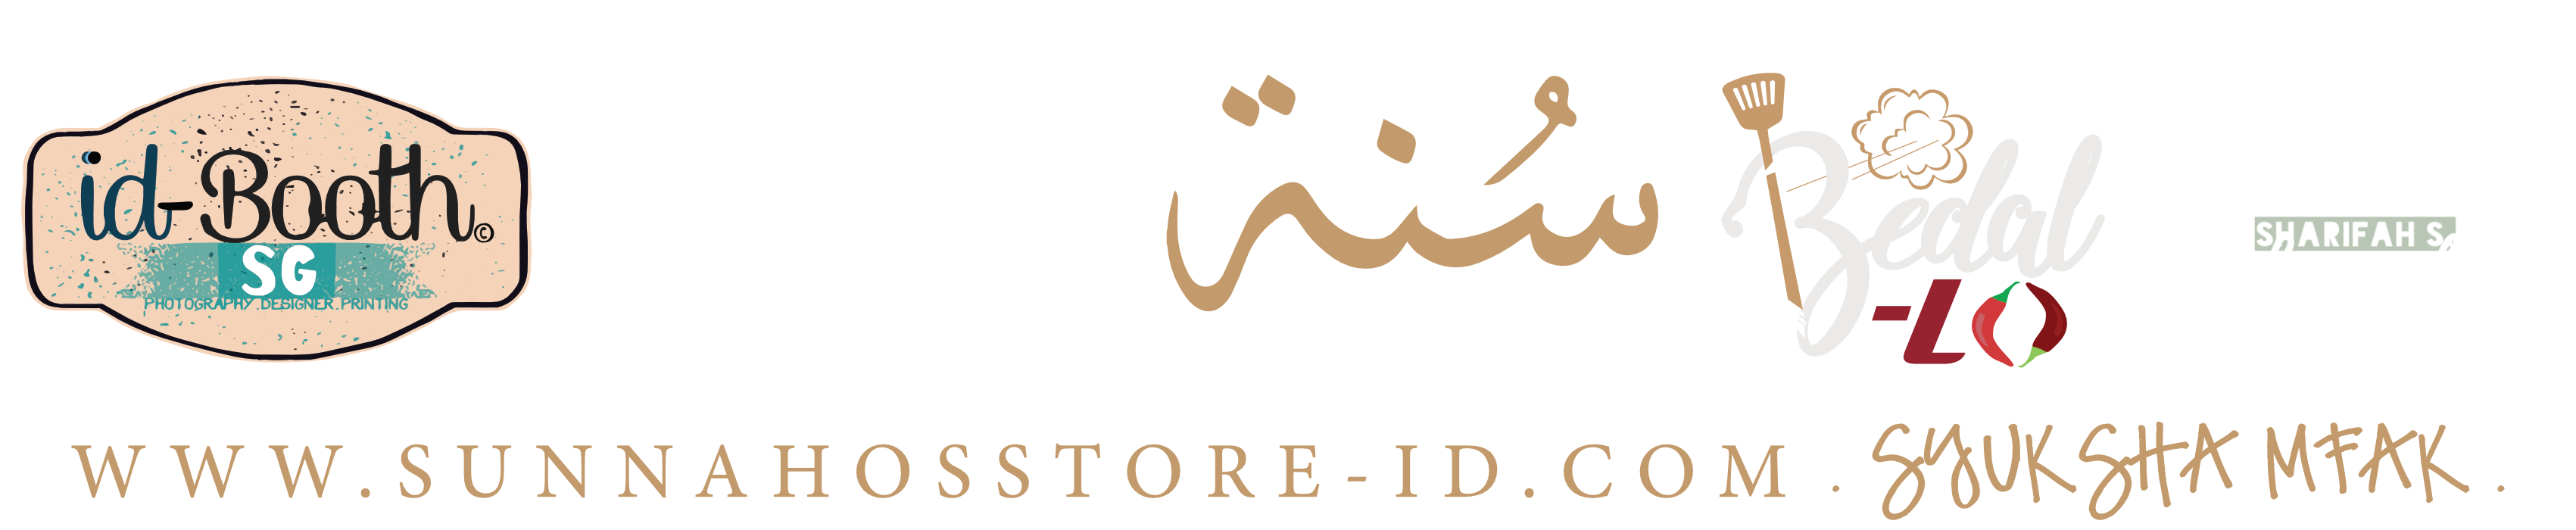 SunnahOSStore | id-Booth SG©